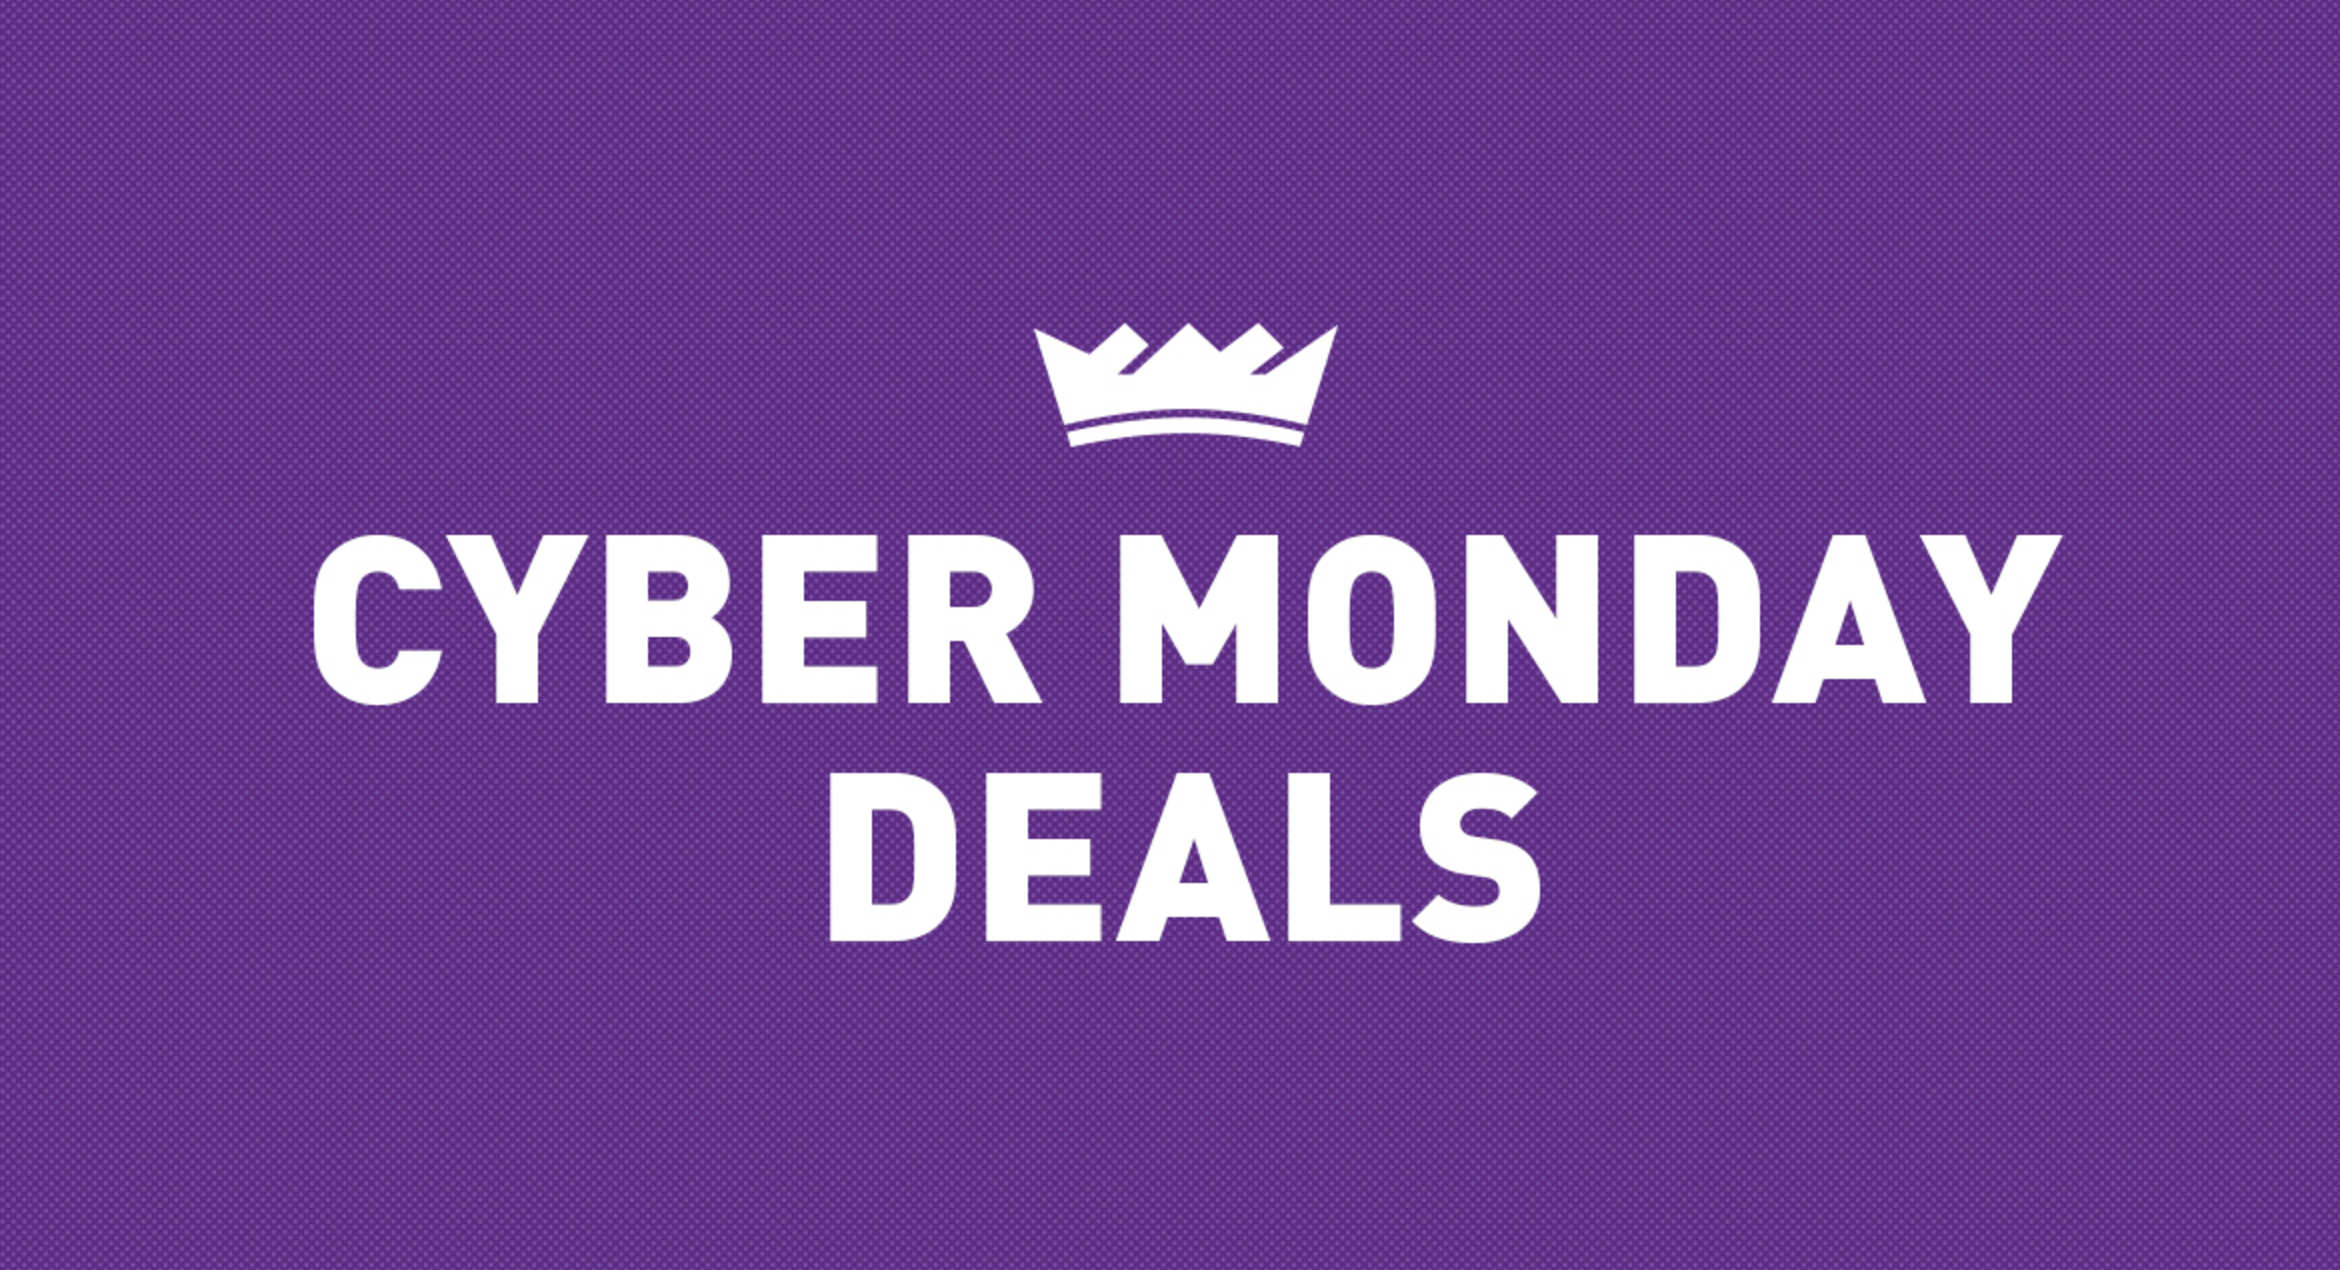 kings share cyber monday deals sacramento kings. Black Bedroom Furniture Sets. Home Design Ideas